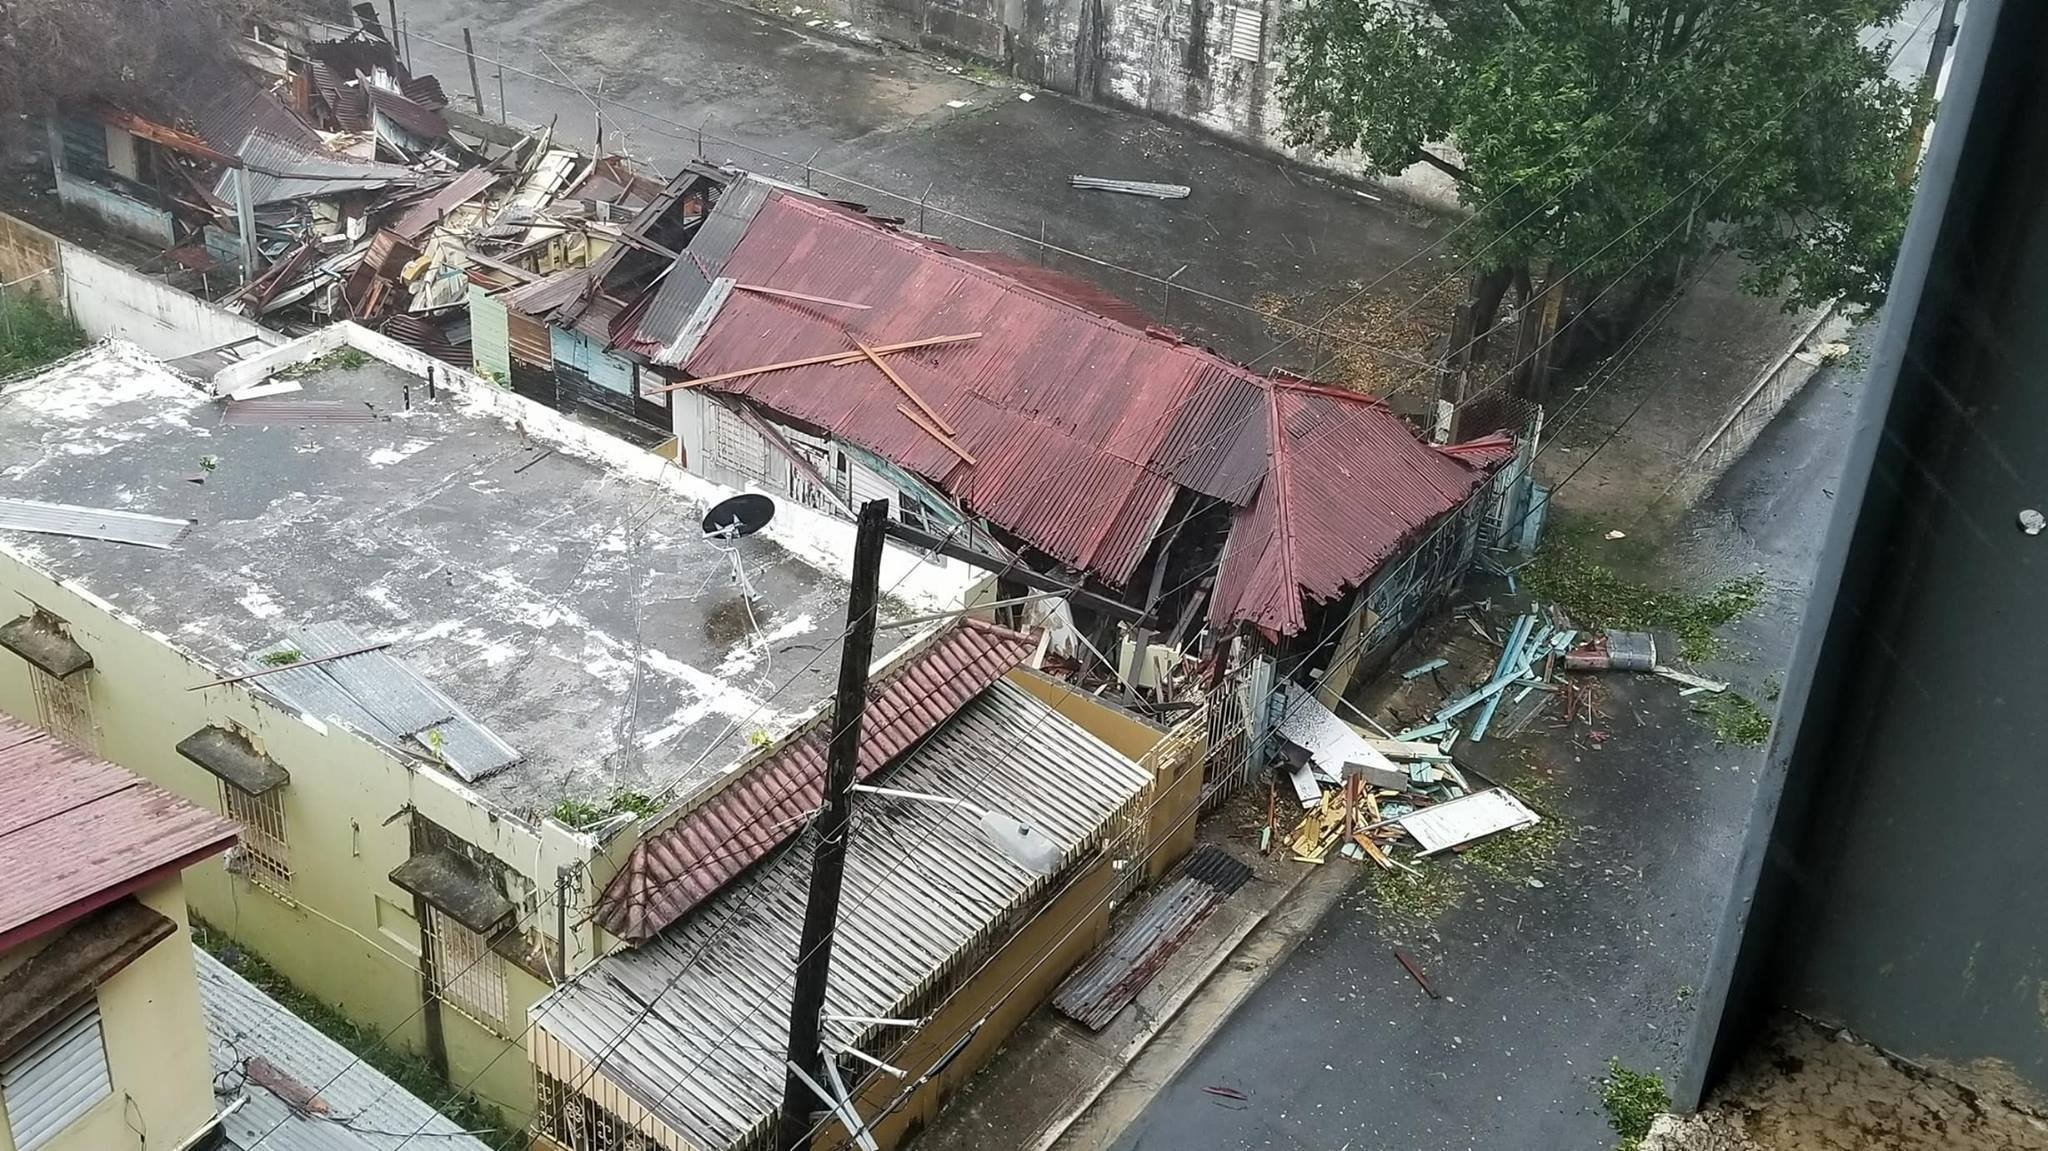 Roofs ripped off houses in San Juan, Puerto Rico as Hurricane Maria slammed into the city on September 20, 2017. photo courtesy of CNN.